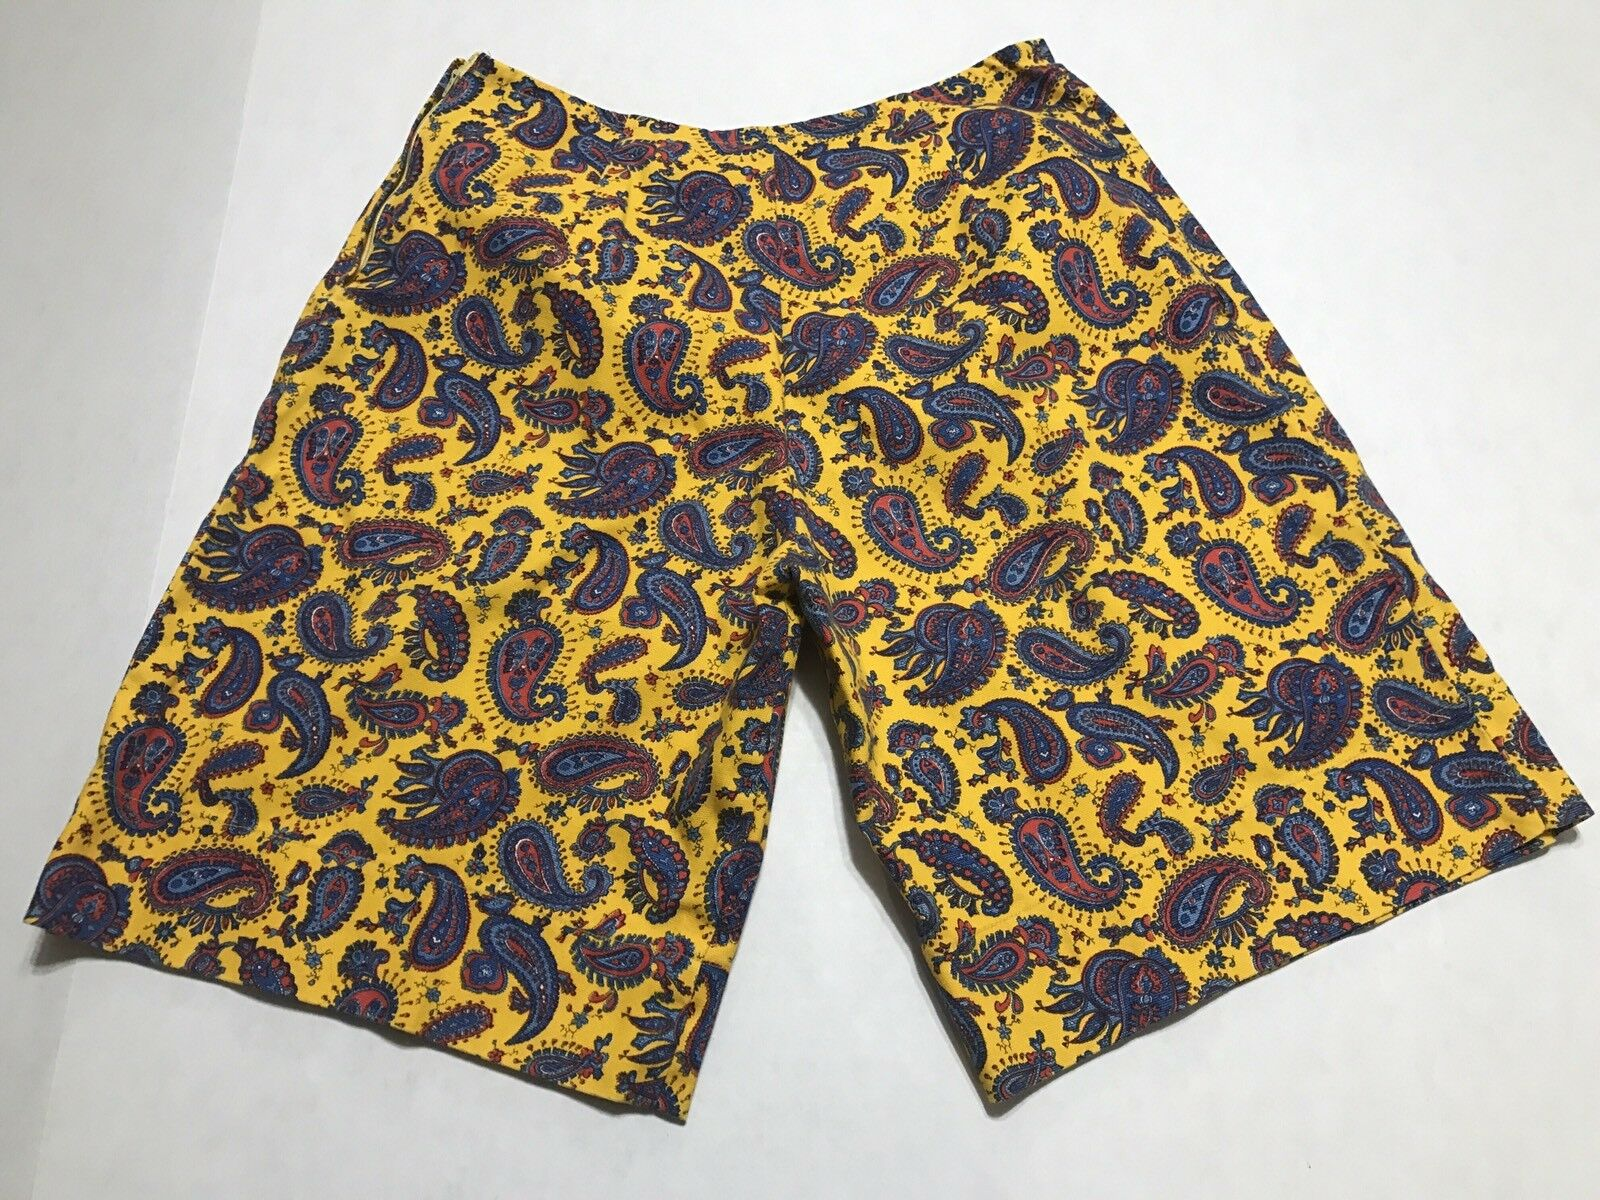 Vintage 70s 80s Women's All Over Paisley Print Zip Shorts Size M